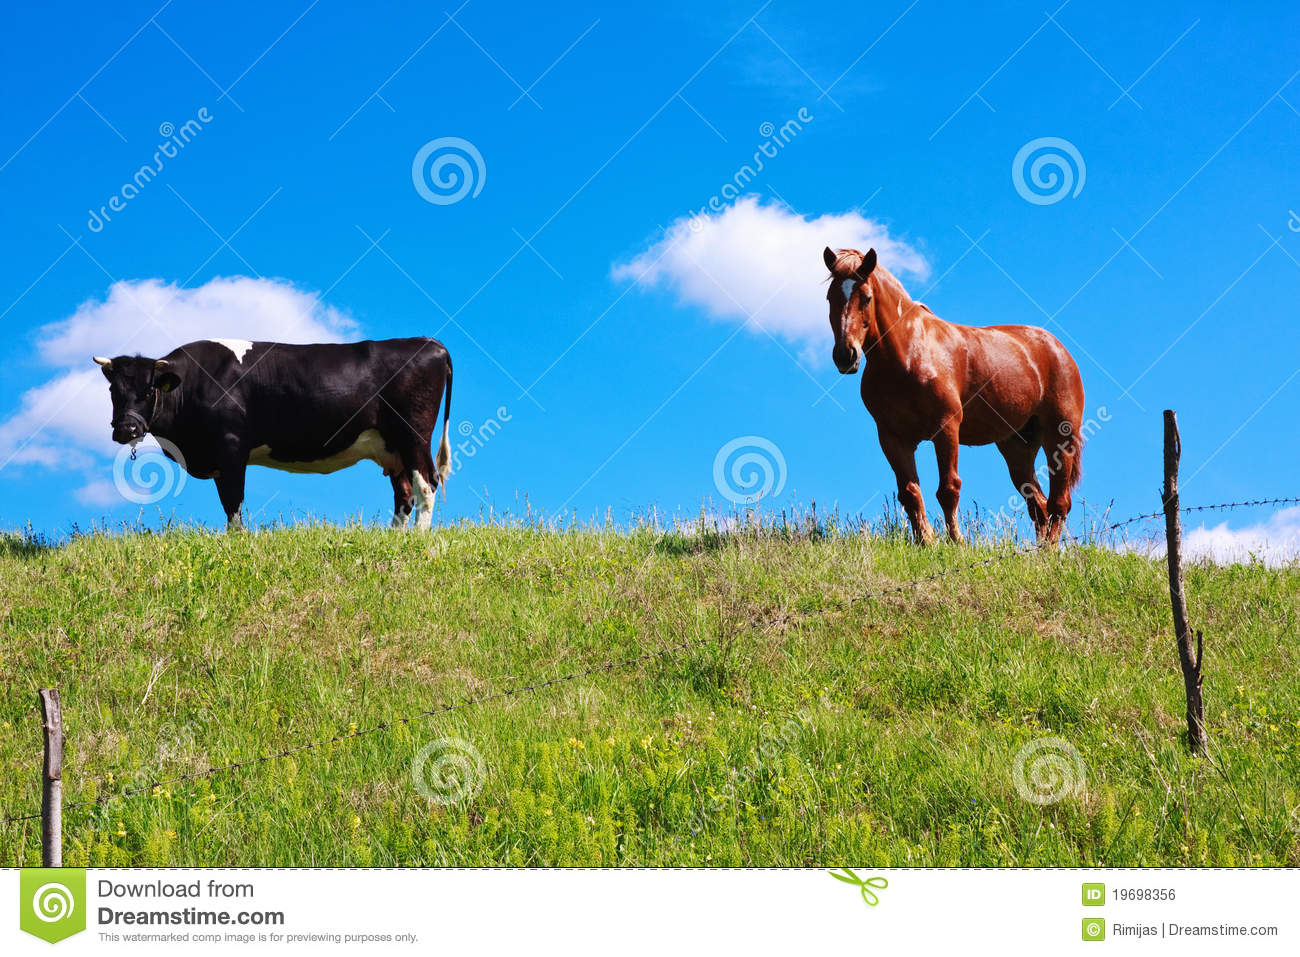 Horse And Cow Royalty Free Stock Image - Image: 19698356